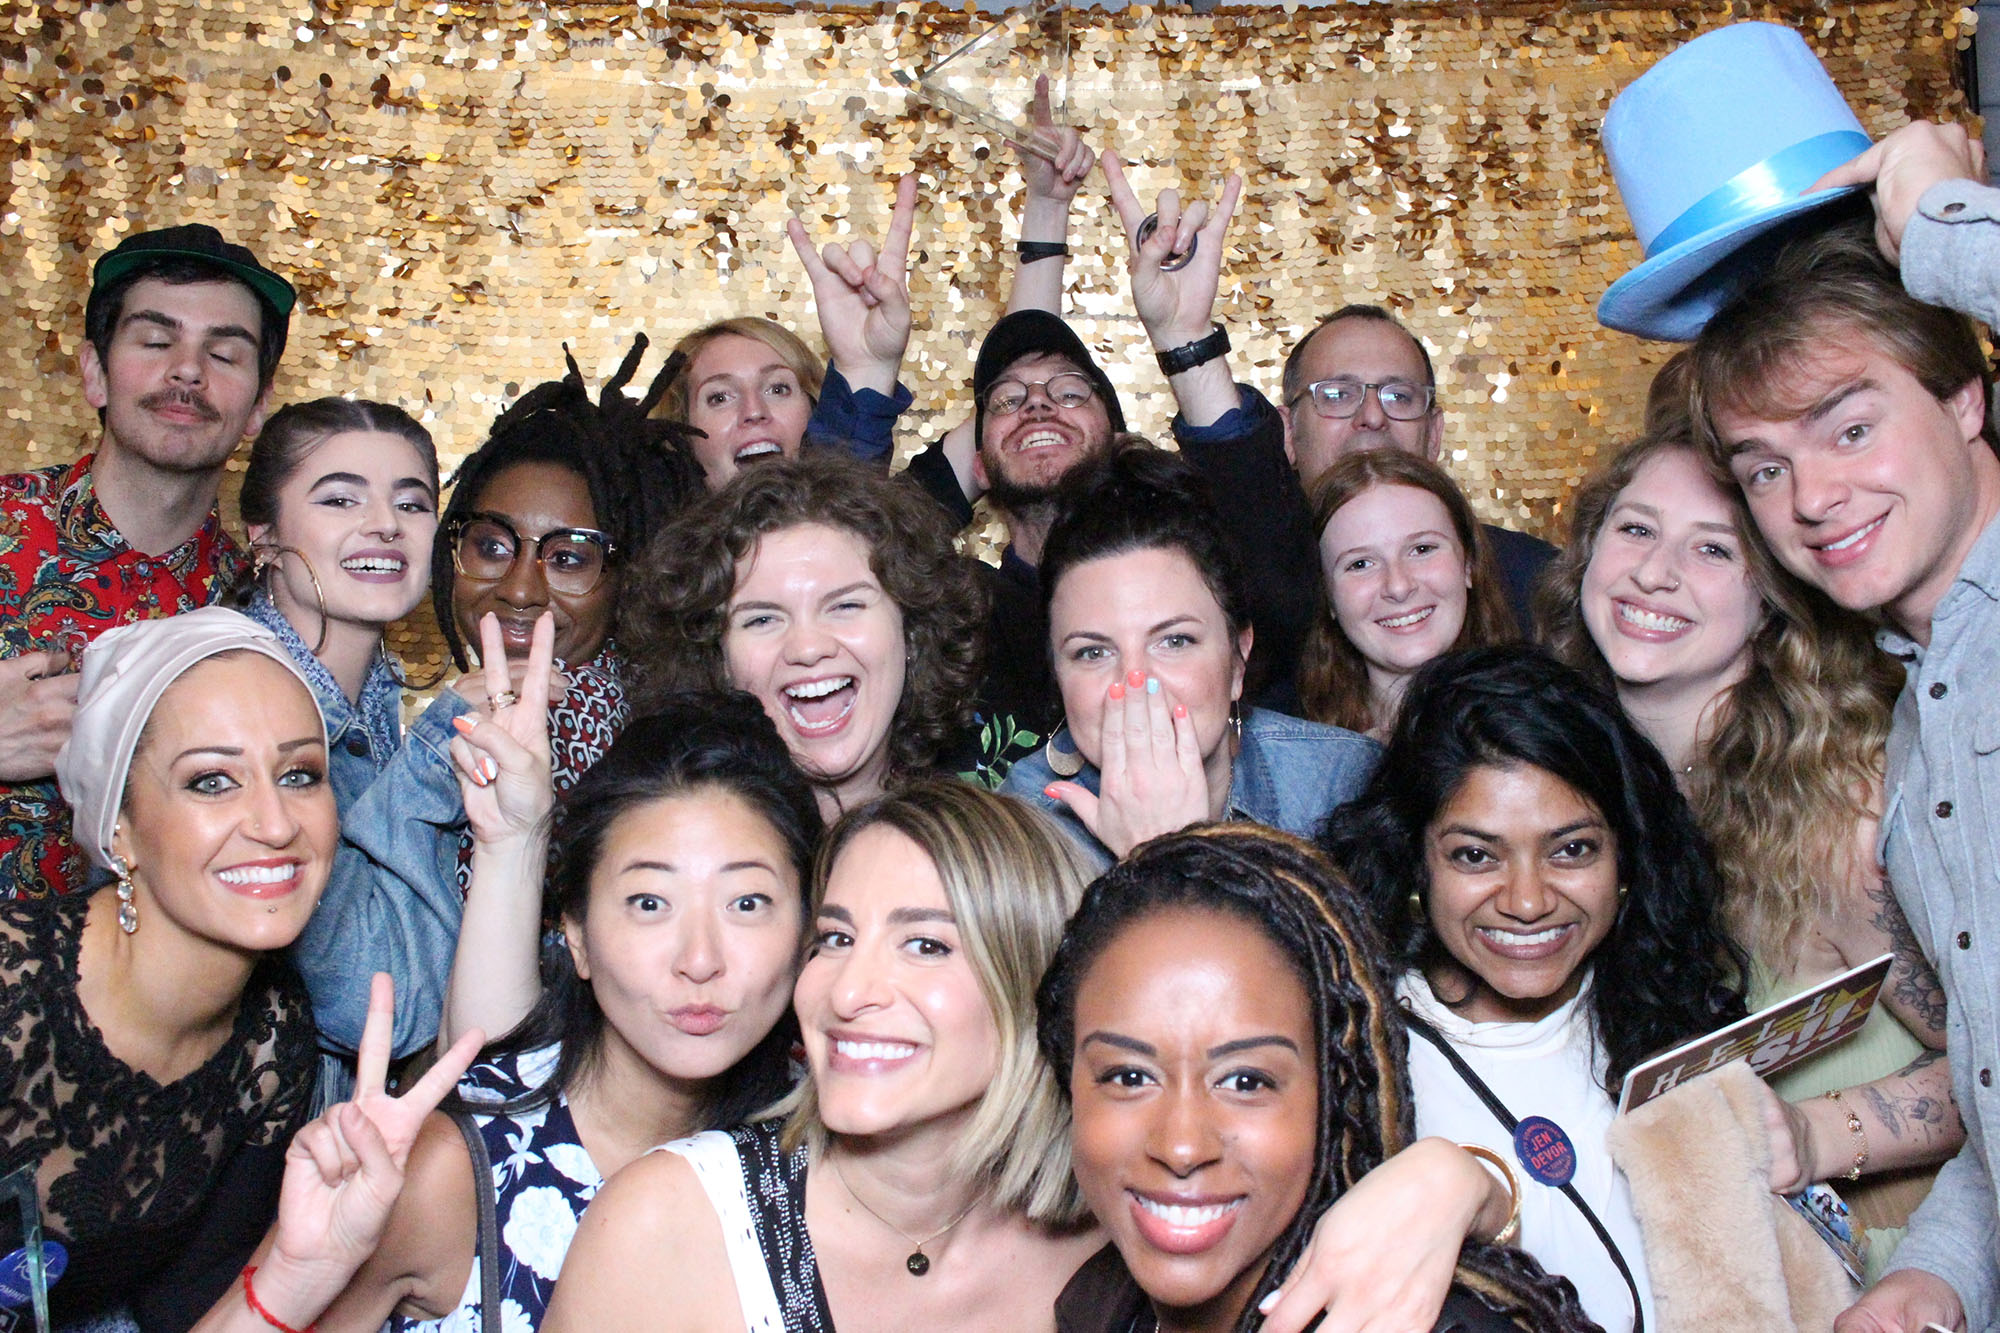 See photos from our photo booth - Share on social using #RadAwardsPHL